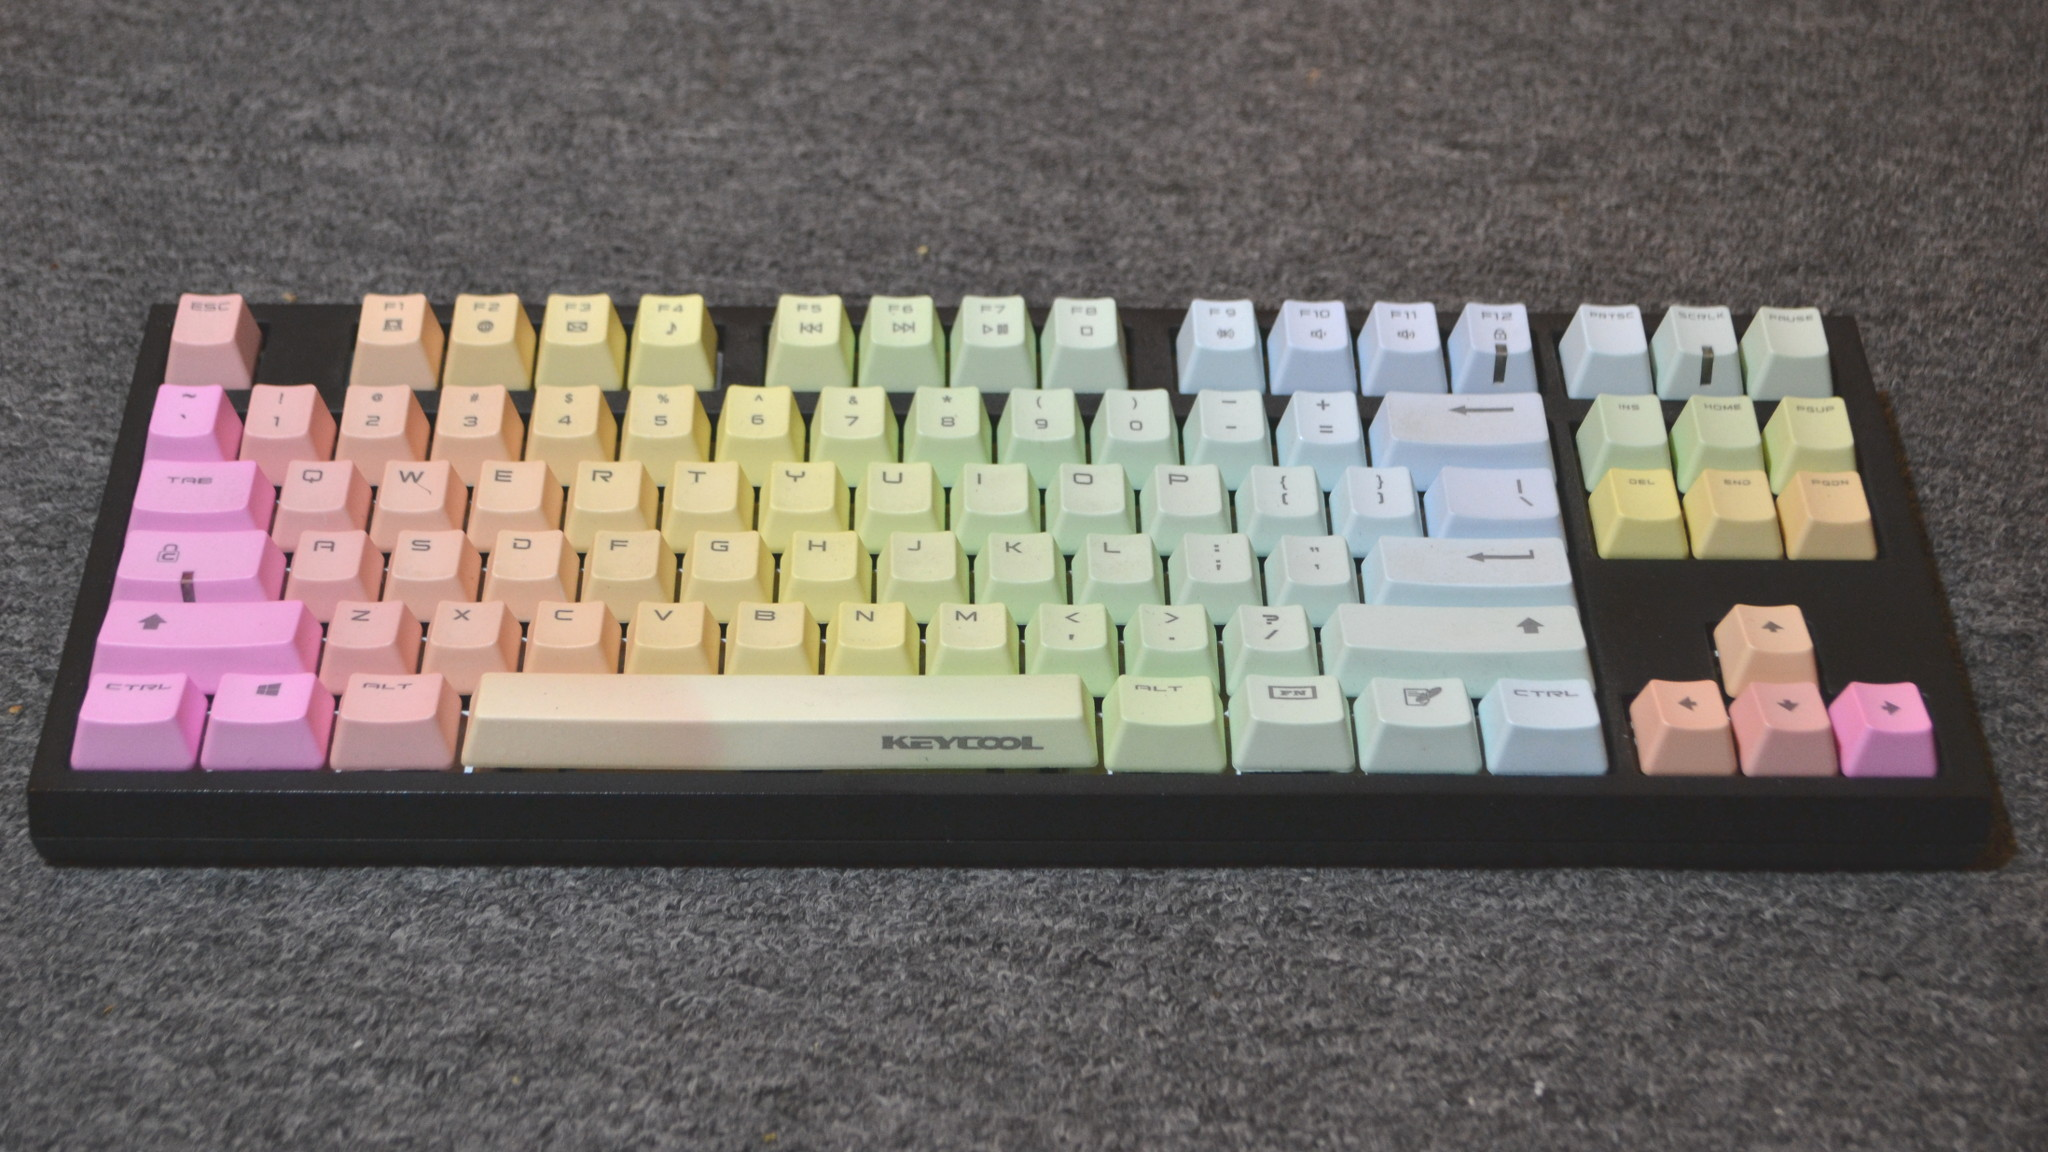 CODE keyboard with Keycool rainbow keycaps